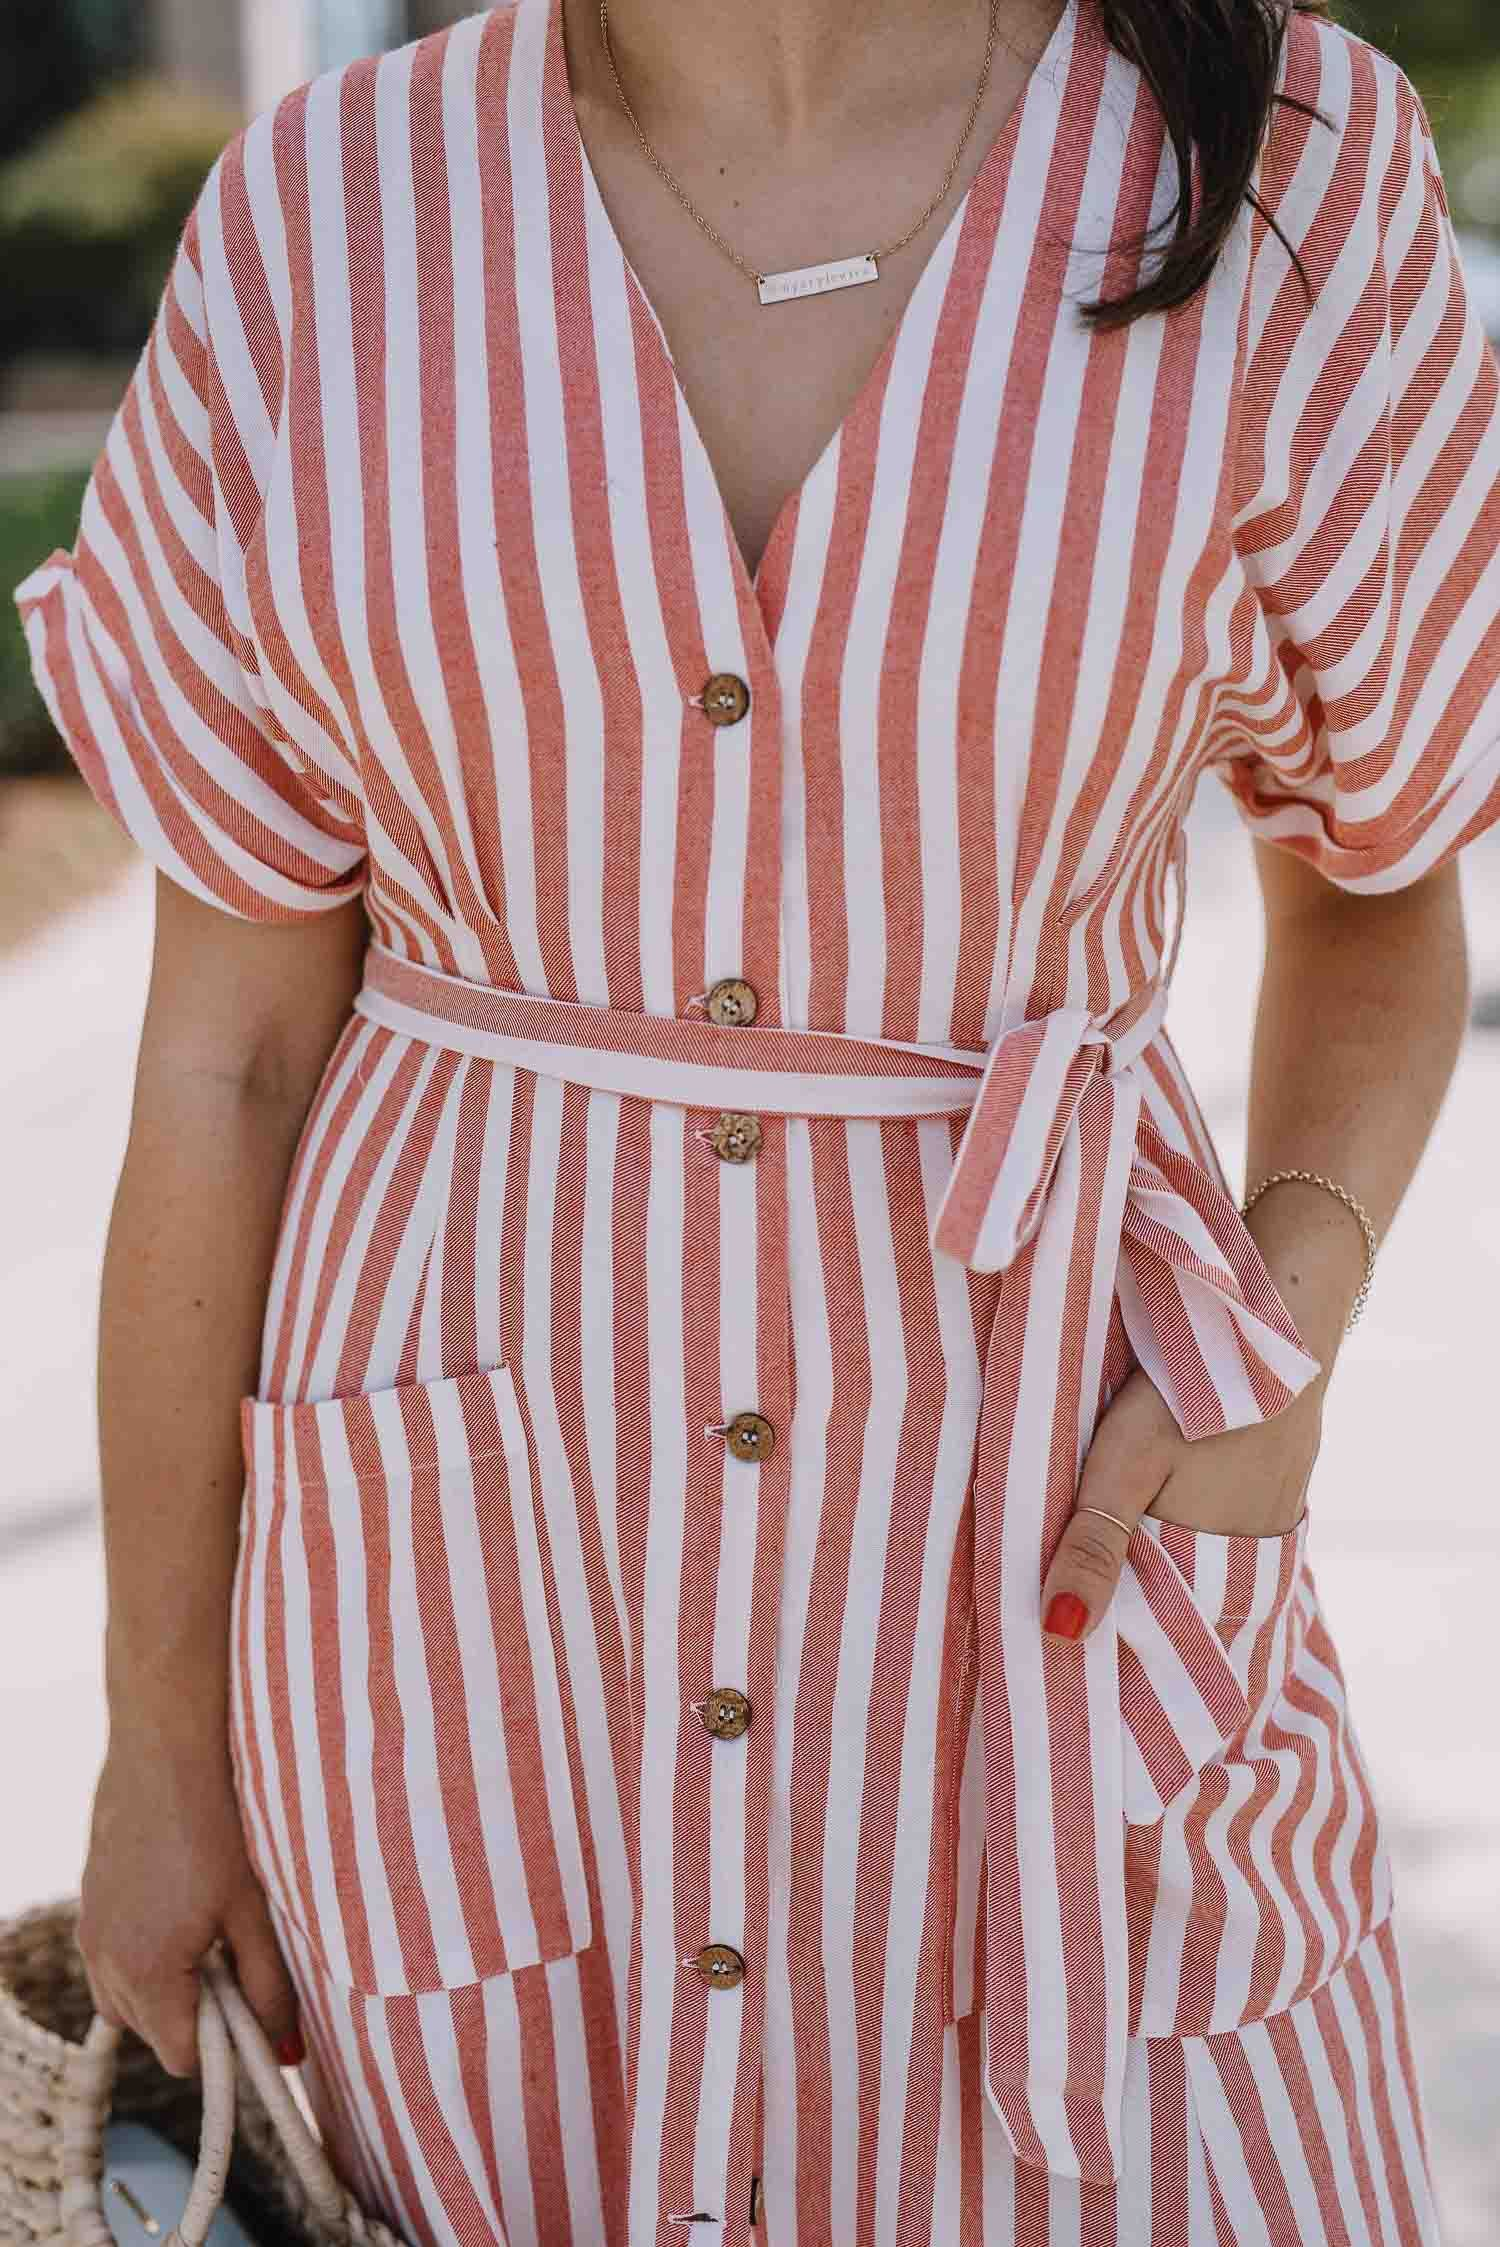 4th Of July Outfit Ideas That Feel Elevated An Indigo Day Red And White Outfits White Outfit Casual Striped Casual Dresses [ 2247 x 1500 Pixel ]